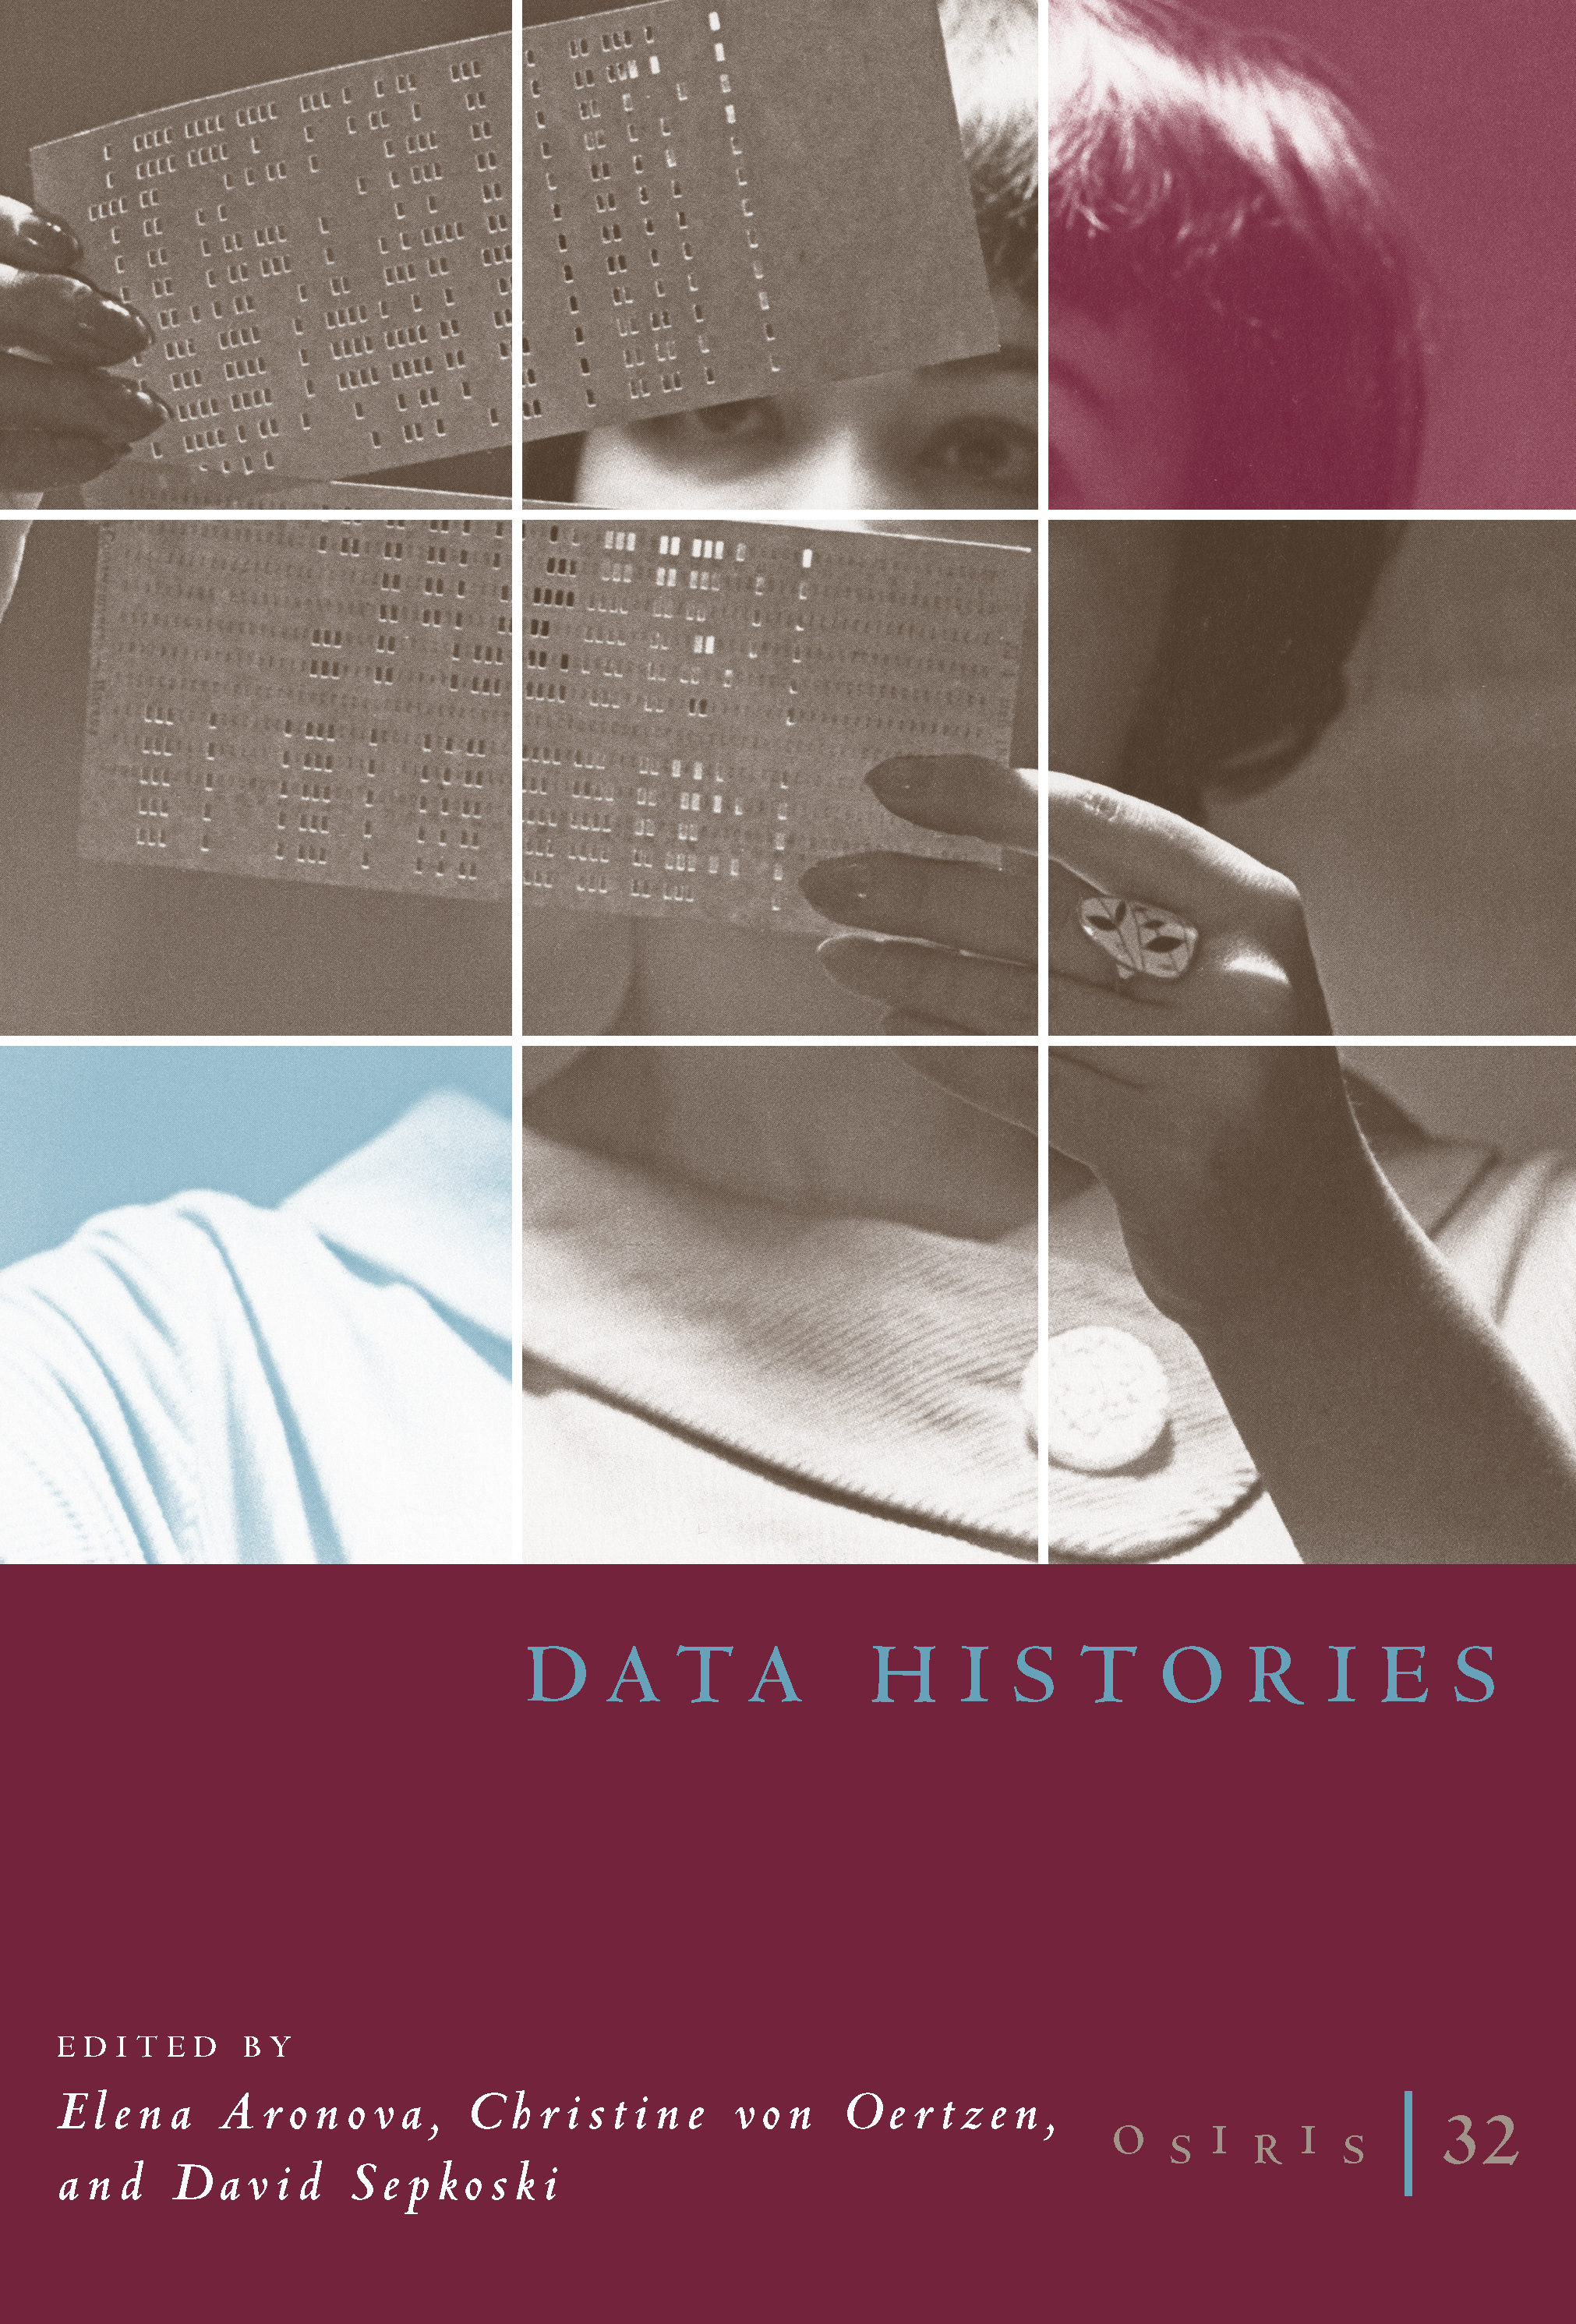 Osiris, Volume 32: Data Histories